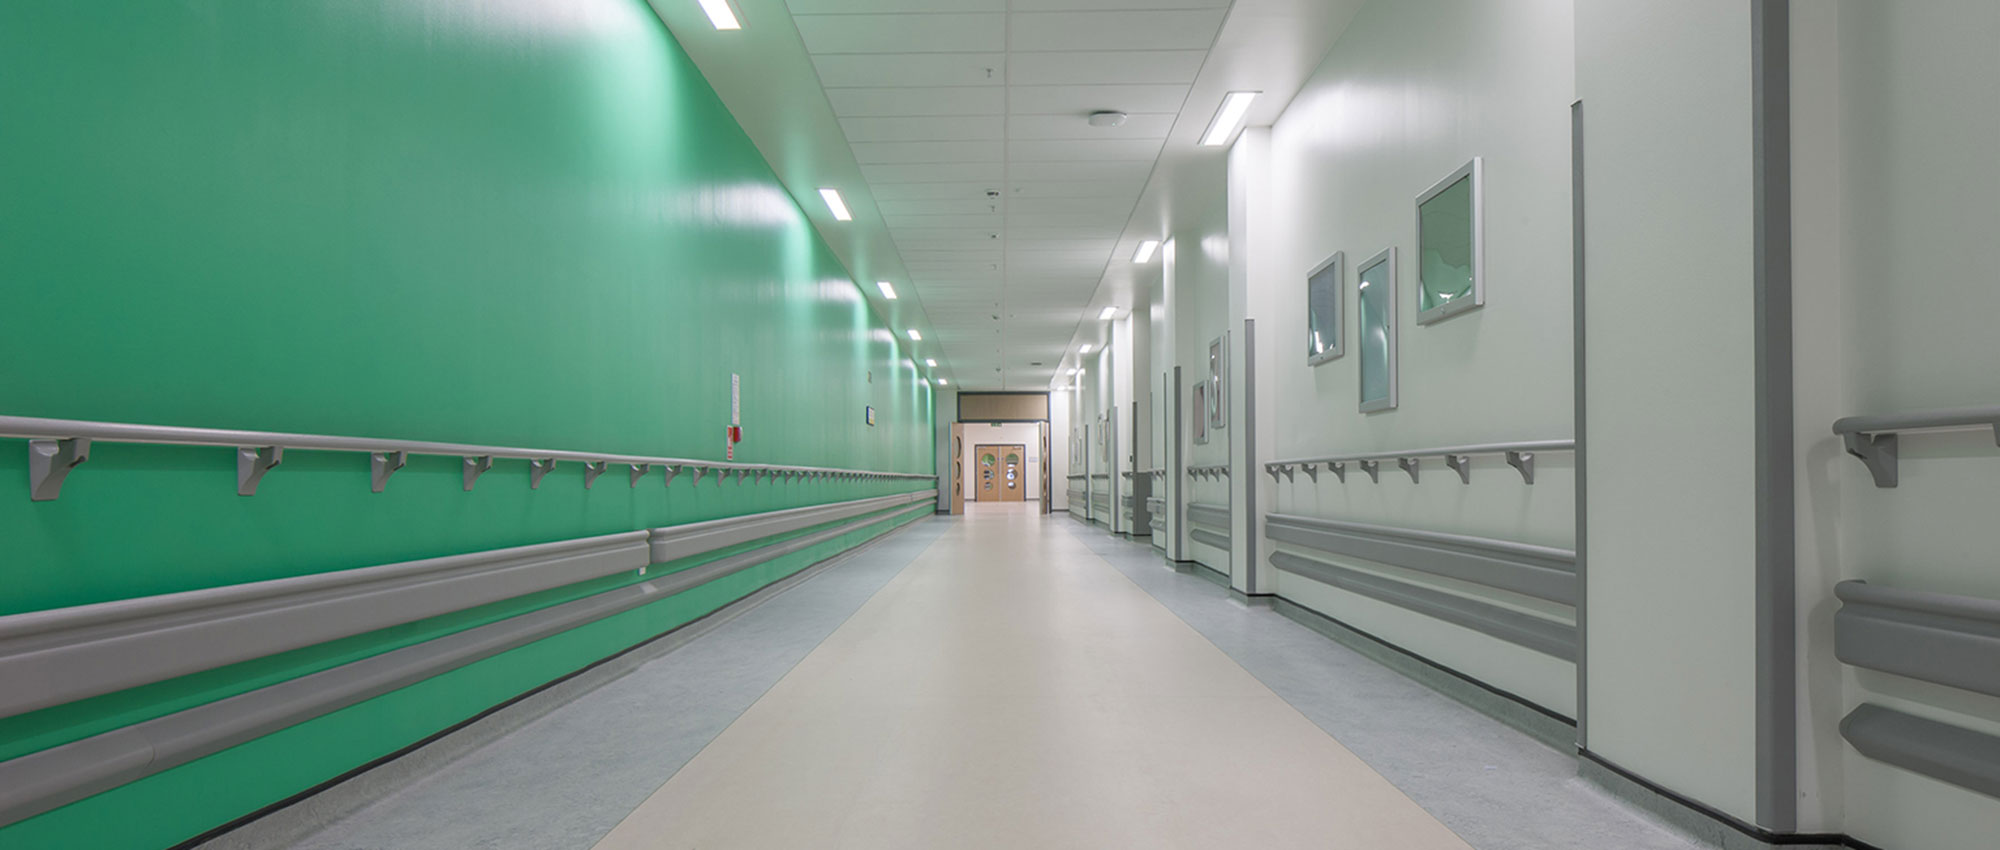 Case-Study-Queen-Elizabeth-University-Hospital-(6)